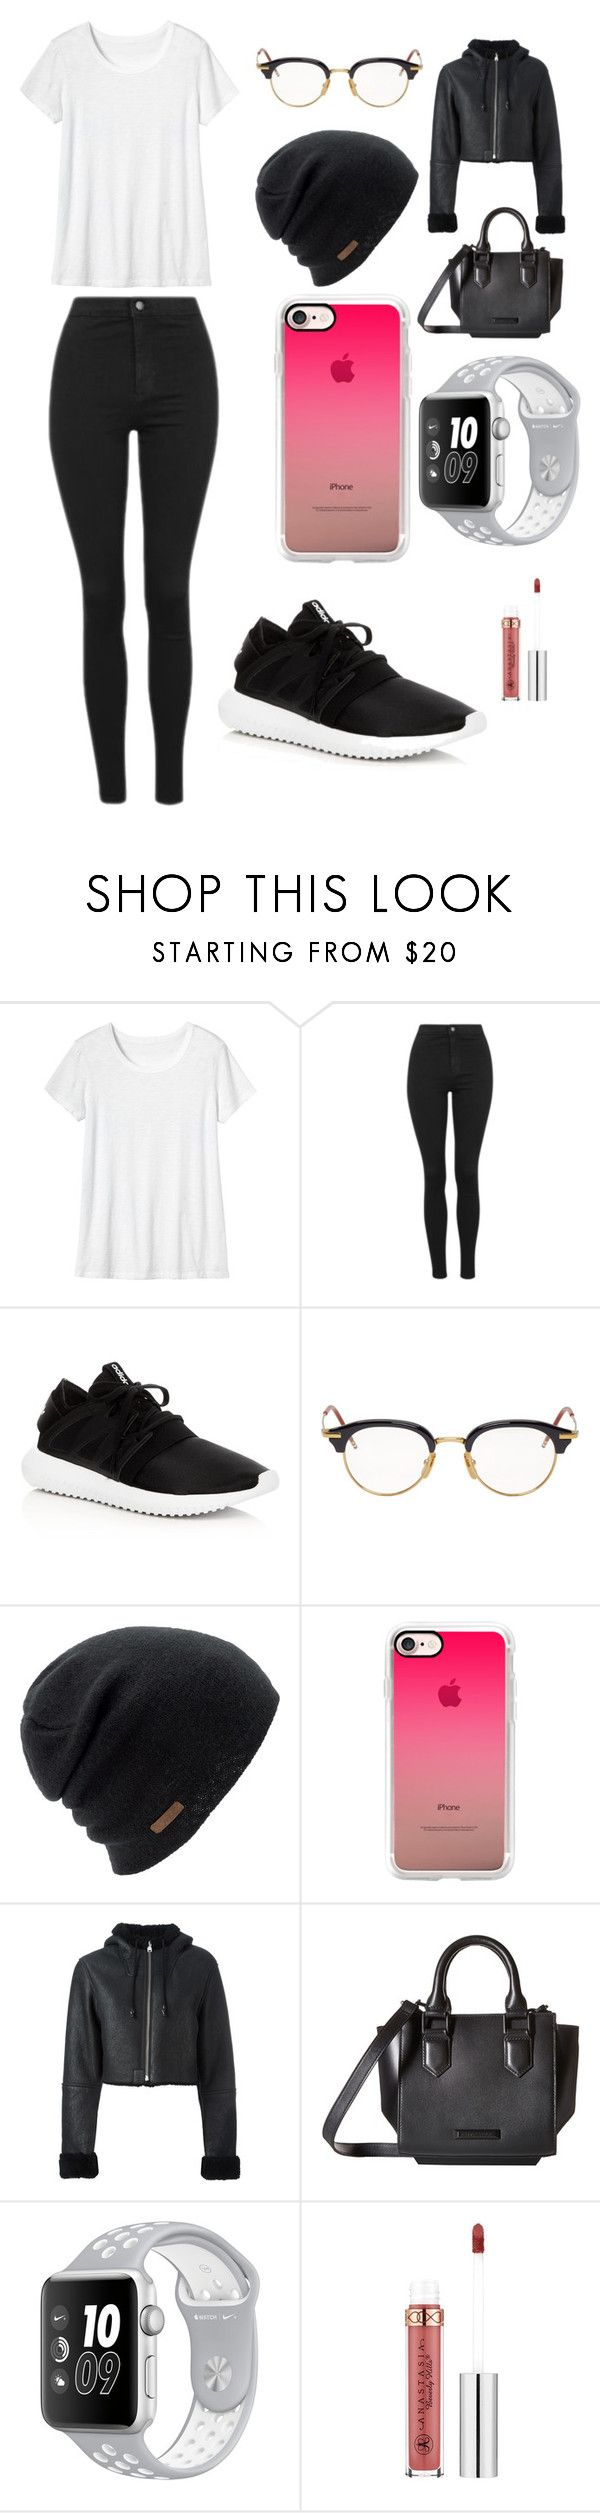 """Sans titre #2270"" by merveille67120 ❤ liked on Polyvore featuring Toast, Topshop, adidas, Thom Browne, Coal, Casetify, adidas Originals, Kendall + Kylie and Anastasia Beverly Hills"